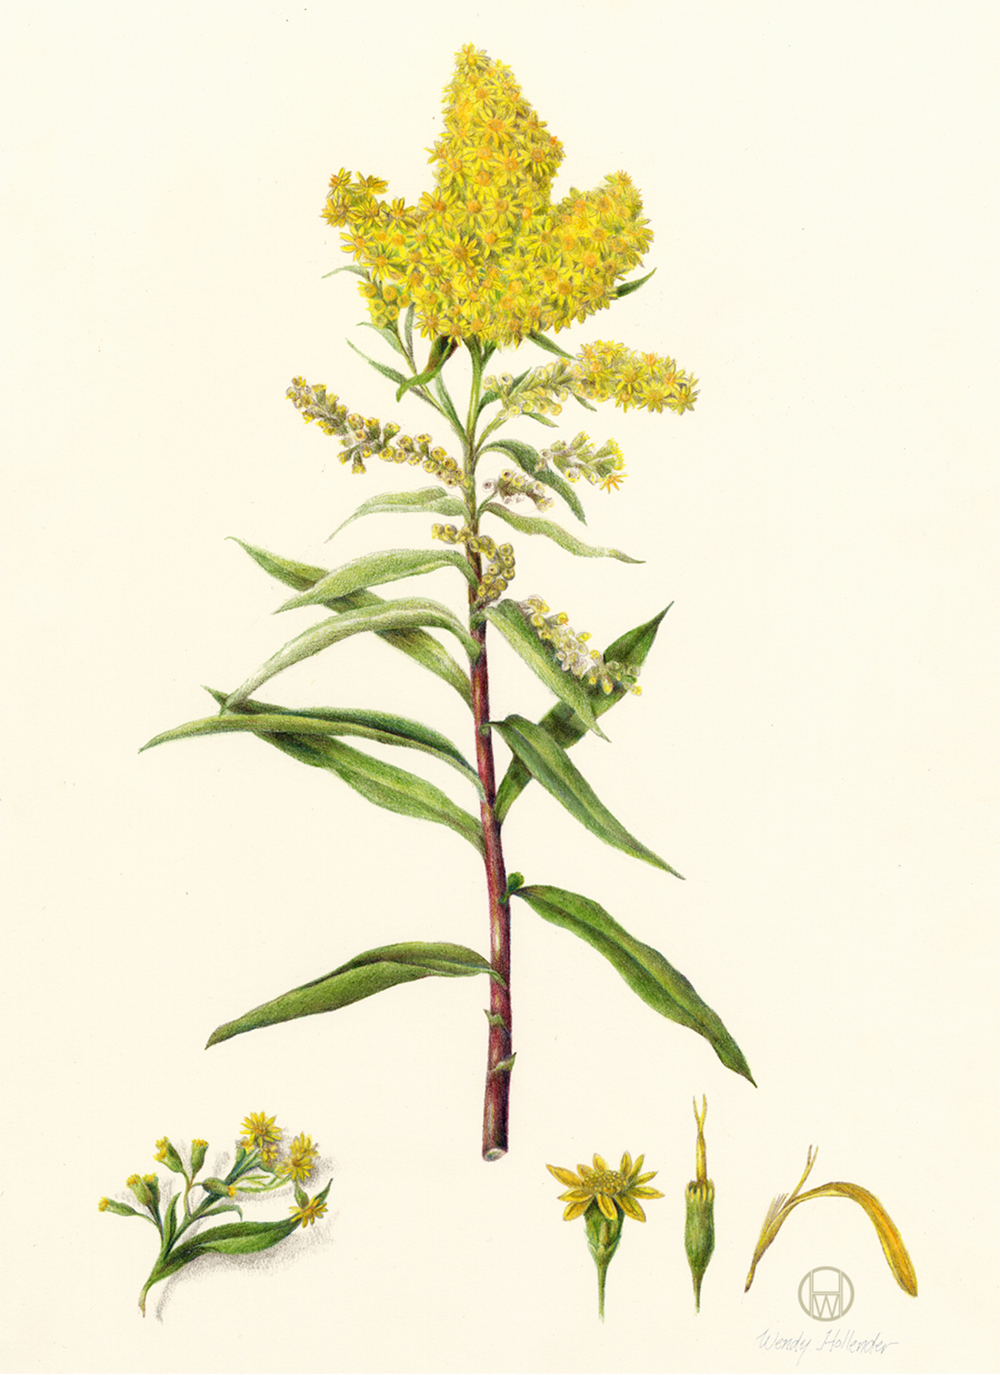 Seaside Goldenrod - Solidago sempervirens